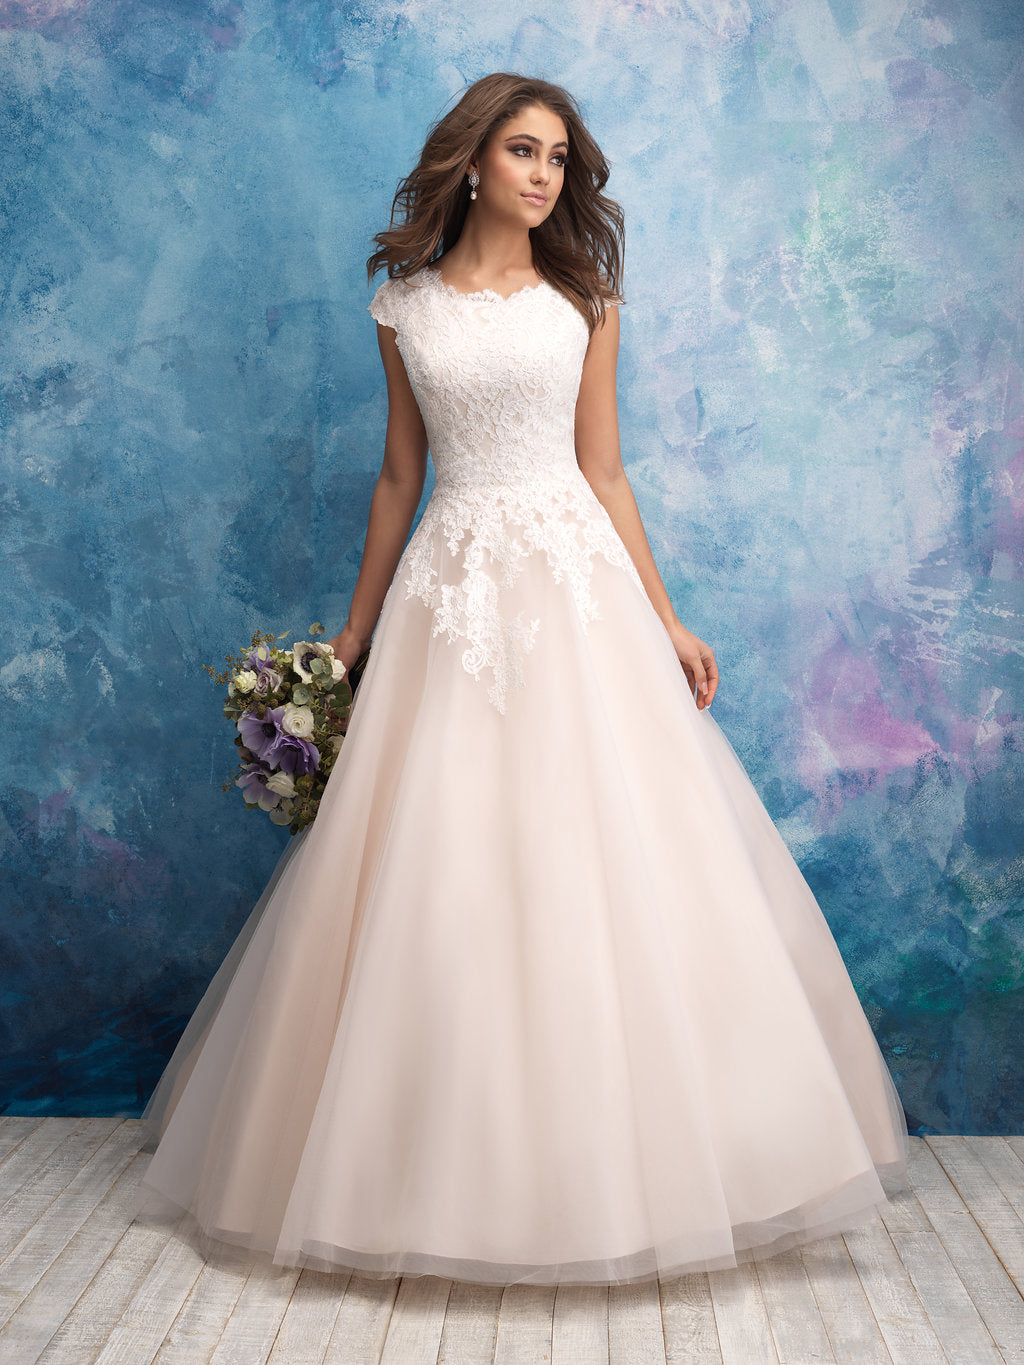 Allure M601 Modest Wedding Dress from A Closet Full of Dresses